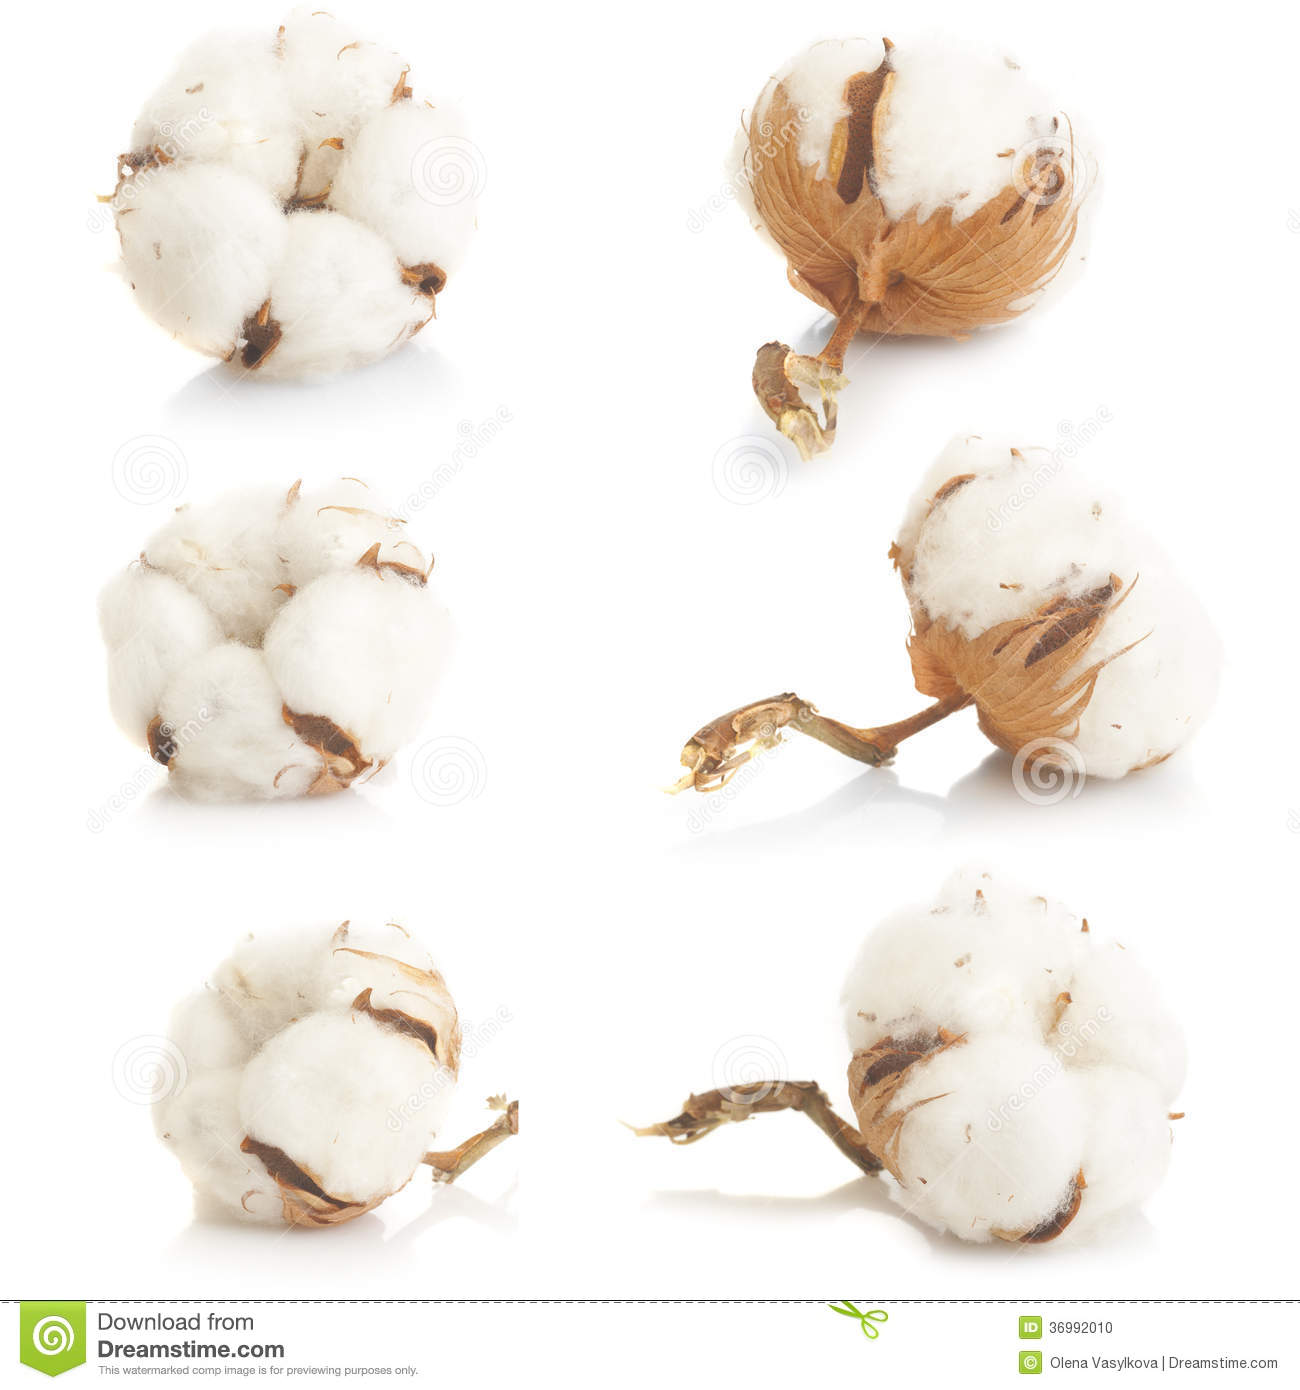 cotton plant jewish singles Learn about fabrics,  cotton – soft vegetable fiber obtained from the seed pod of the cotton plant and one of the major fashion fibers in the textile industry.